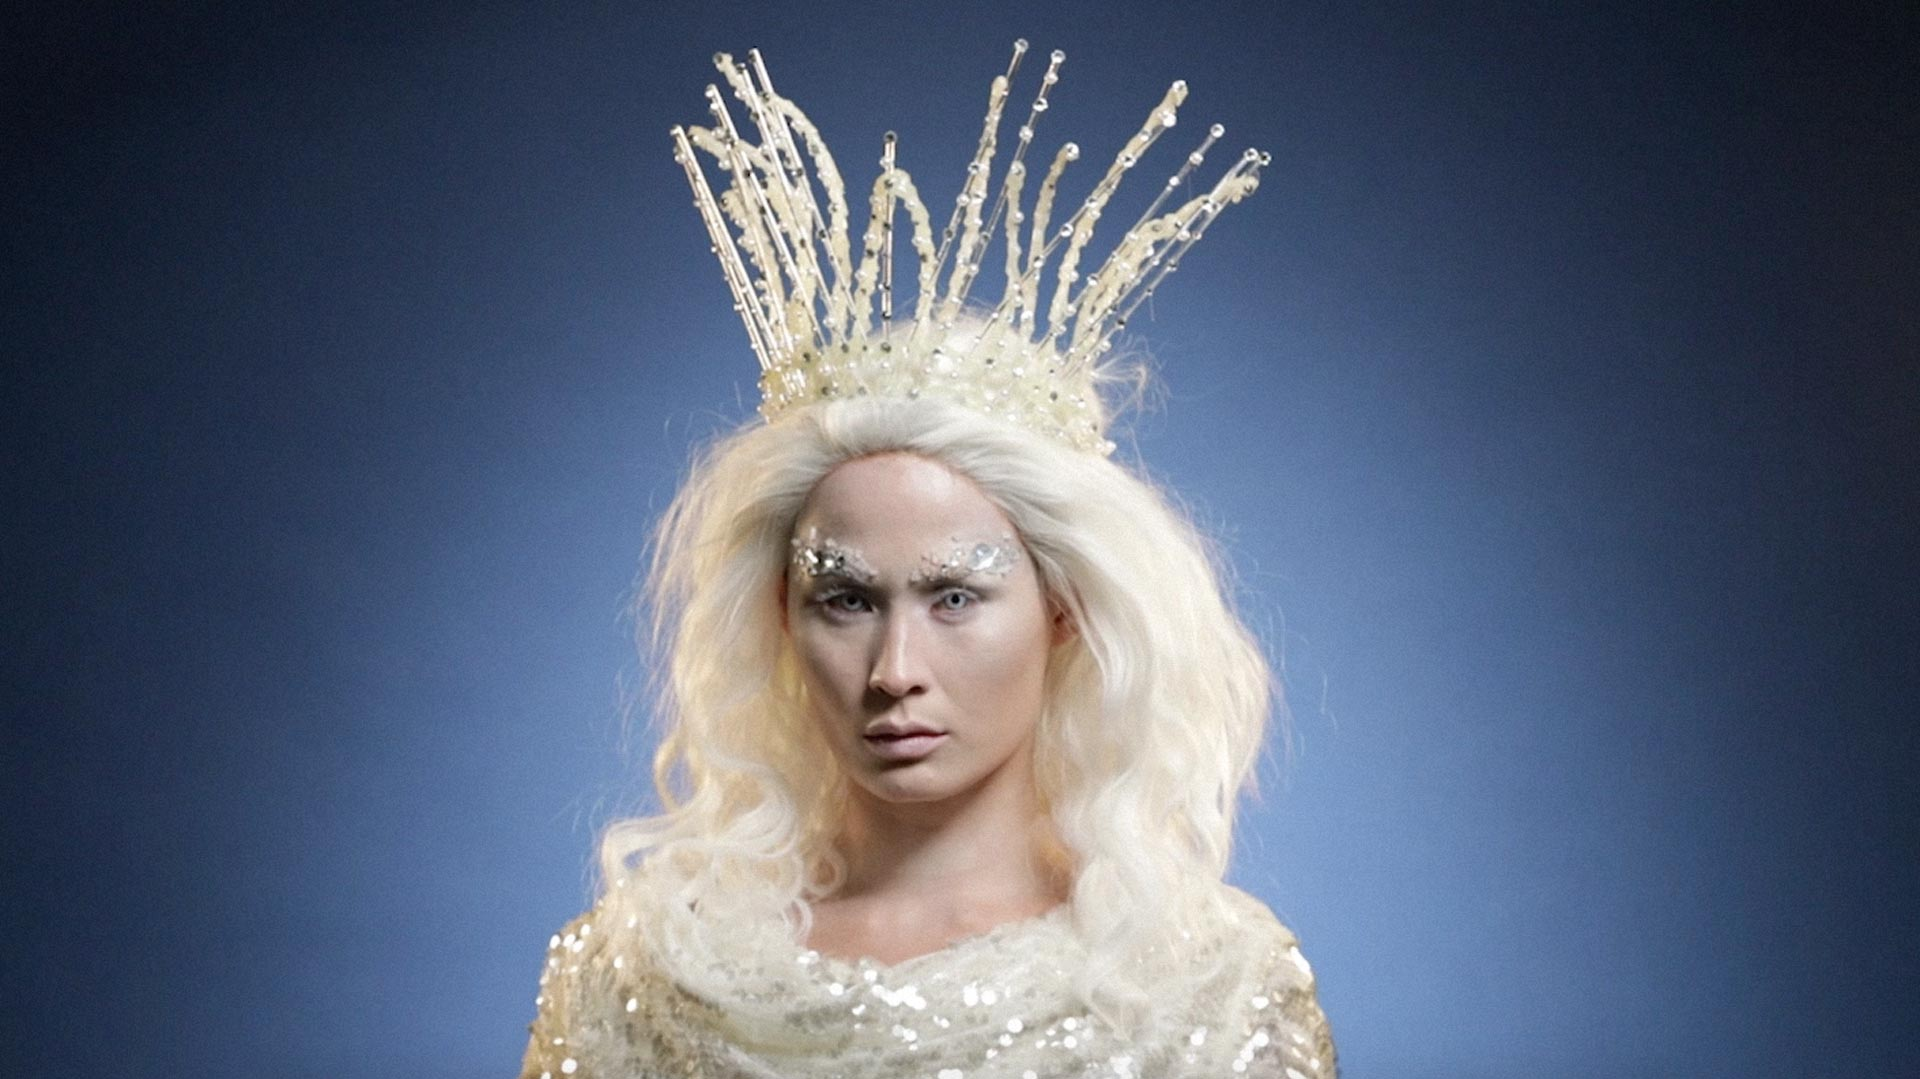 A model made up as Jadis the White Witch from the Chronicles of Narnia